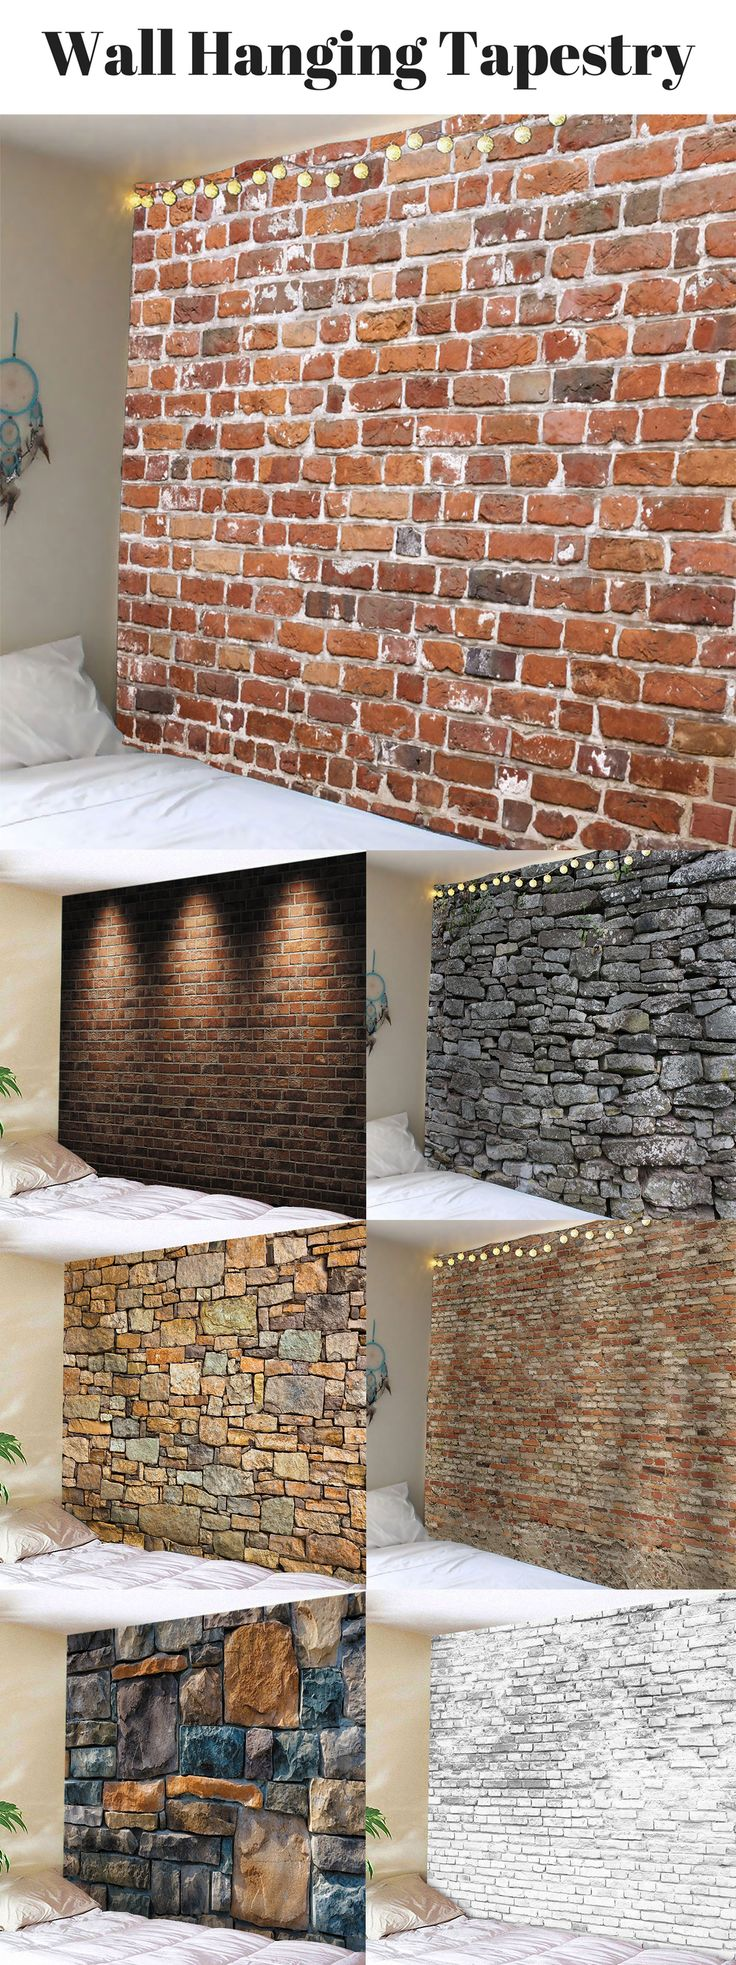 Brick Wall Hanging Tapestry | Starting from $8.62| #WallArt #WallHanging #tapestry